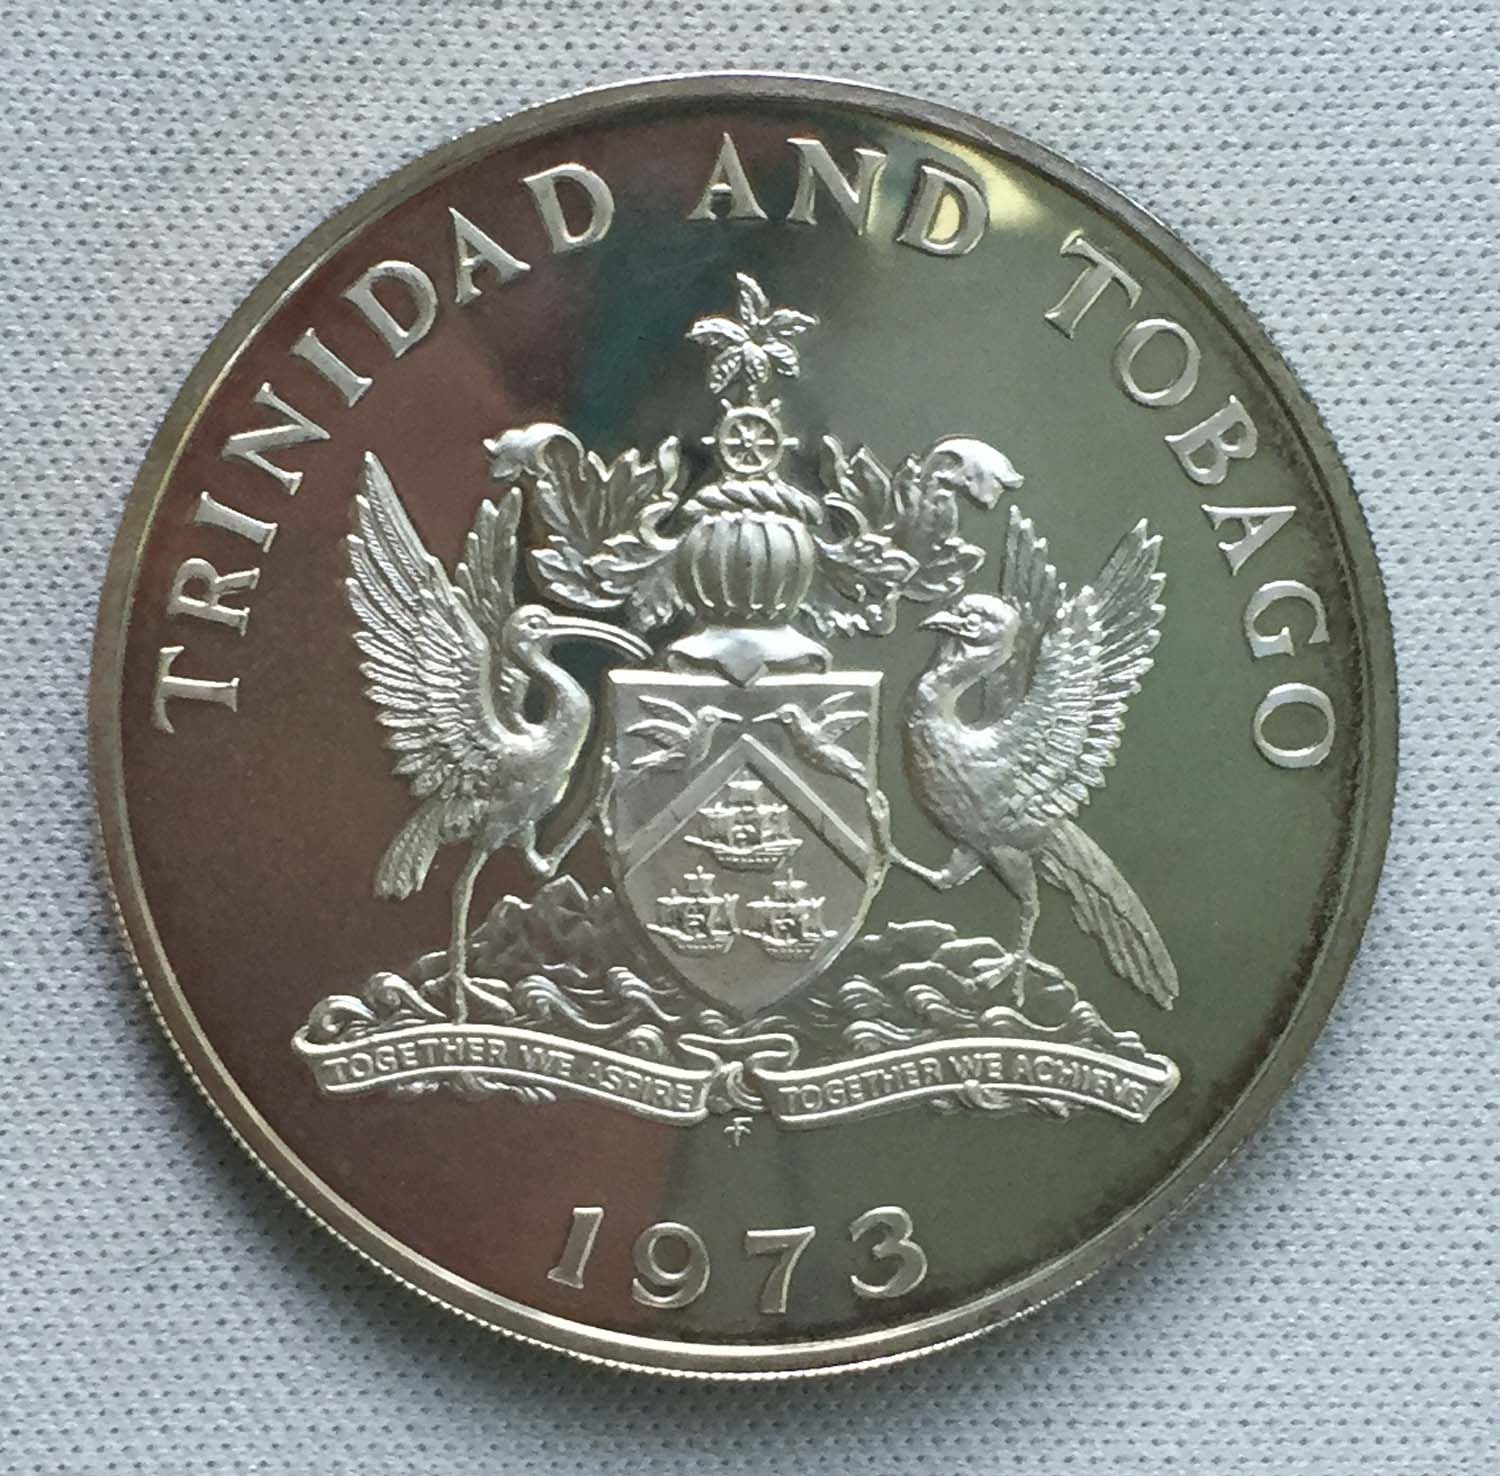 1973 Trinidad and Tobago 5 Dollars .925 Silver Coin - Proof - for ...